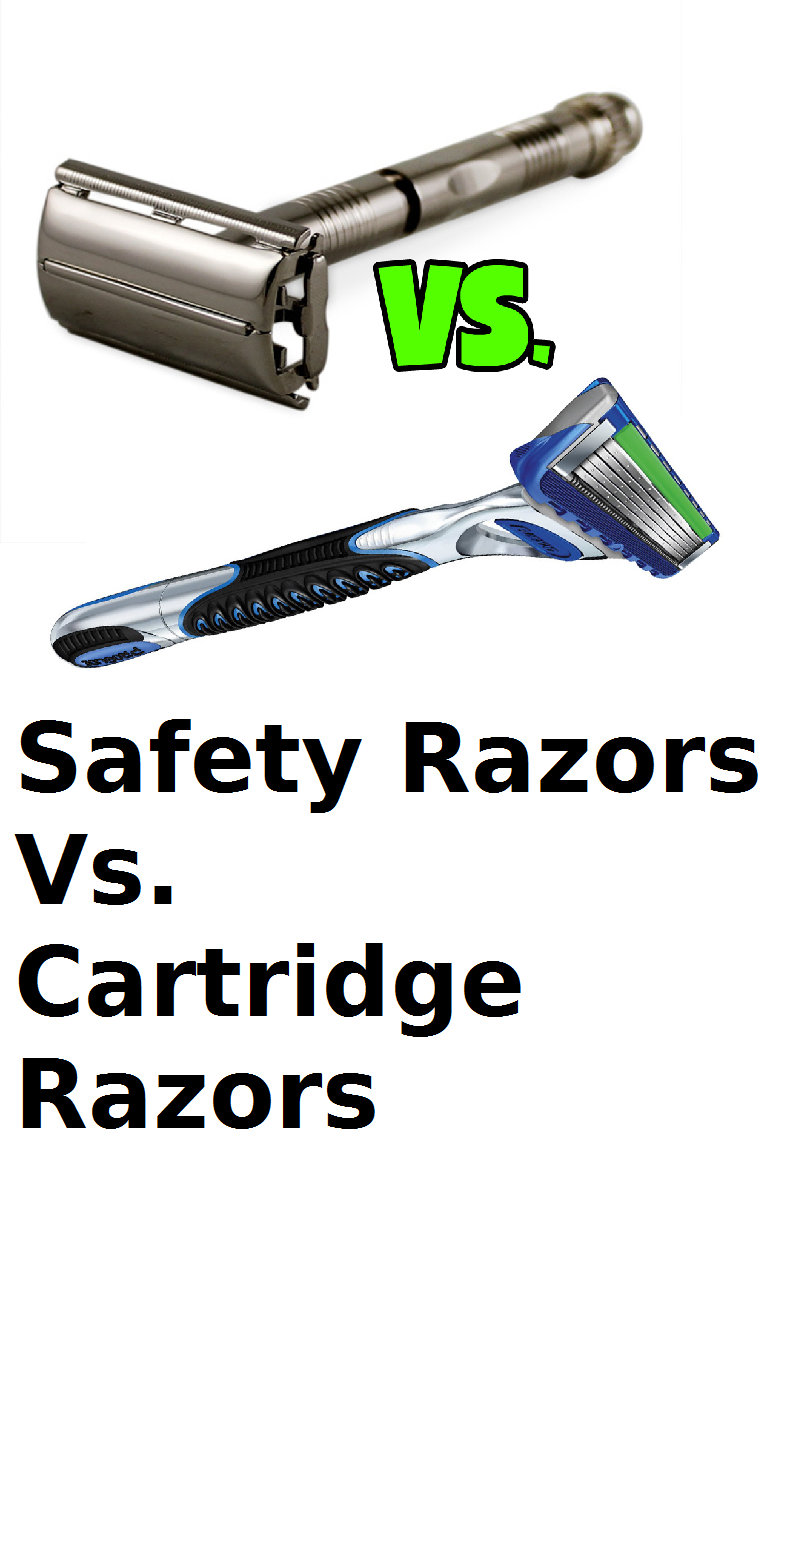 SAFETY RAZORS vs. CARTRIDGE RAZORS Which is better? Find